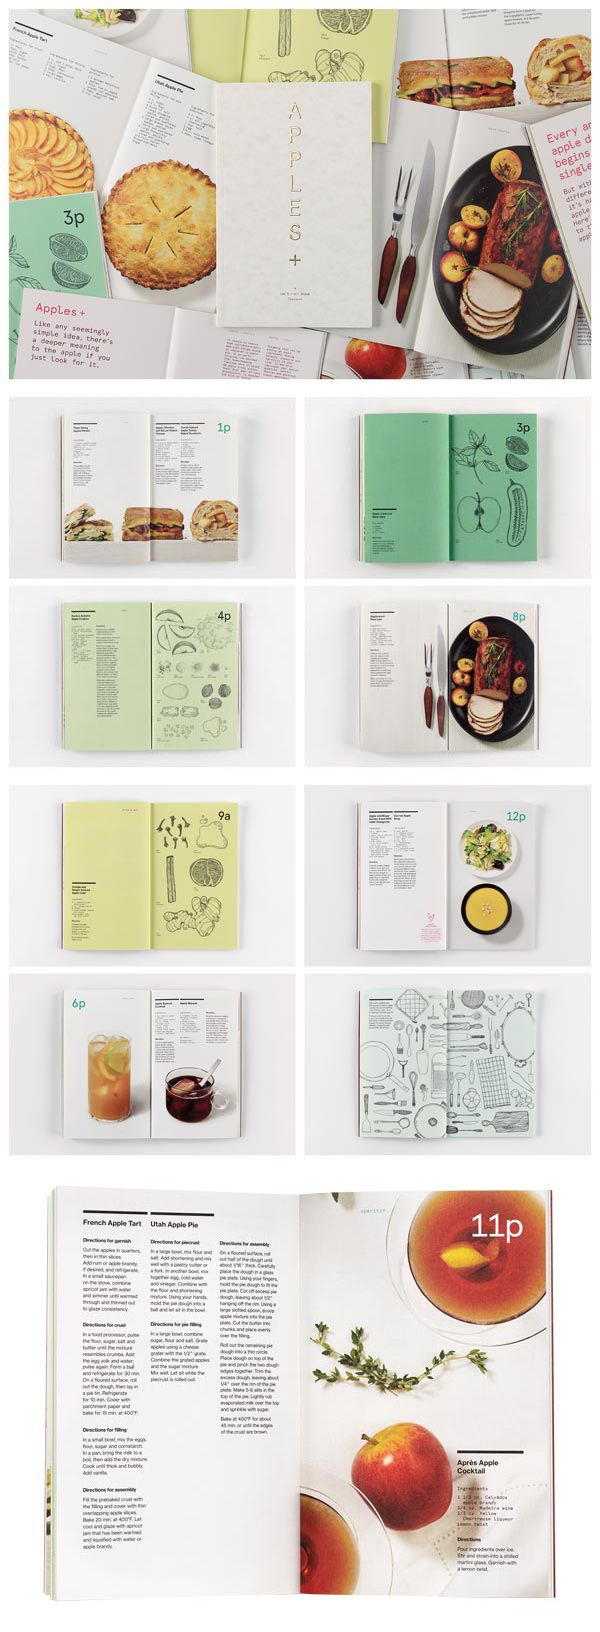 "The ""Apples +"" cookbook, created by Leo Burnett for its employees, won an Outstanding Achievement award in HOW's In-house Design Awards 2013. Find out how you can enter for 2014 here: http://www.howdesign.com/design-competitions/in-house-design-awards/"